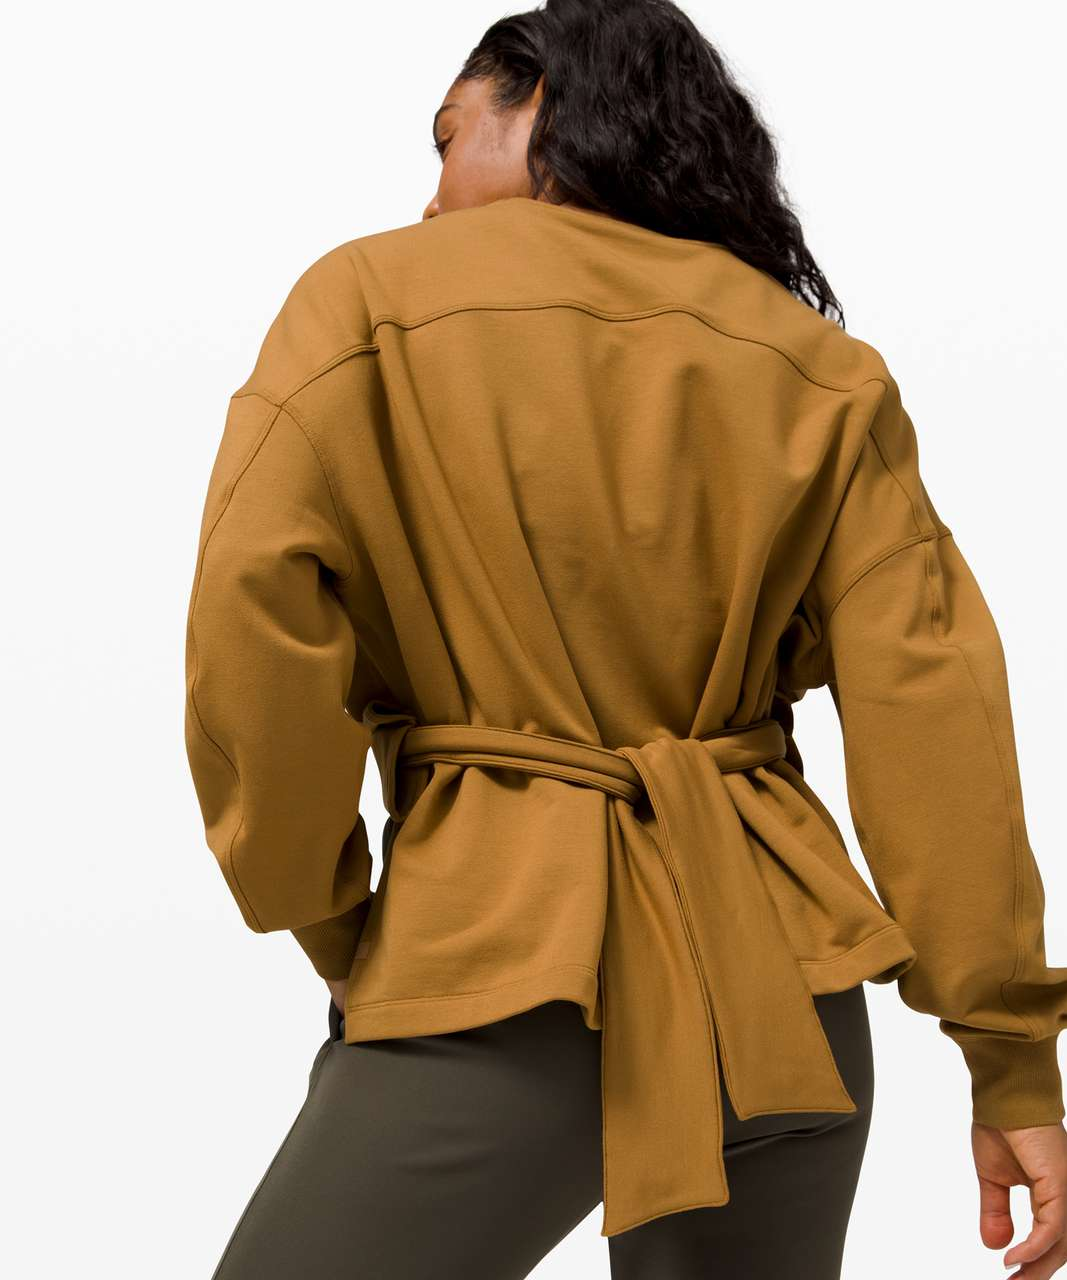 Lululemon Bound to Bliss Pullover - Spiced Bronze